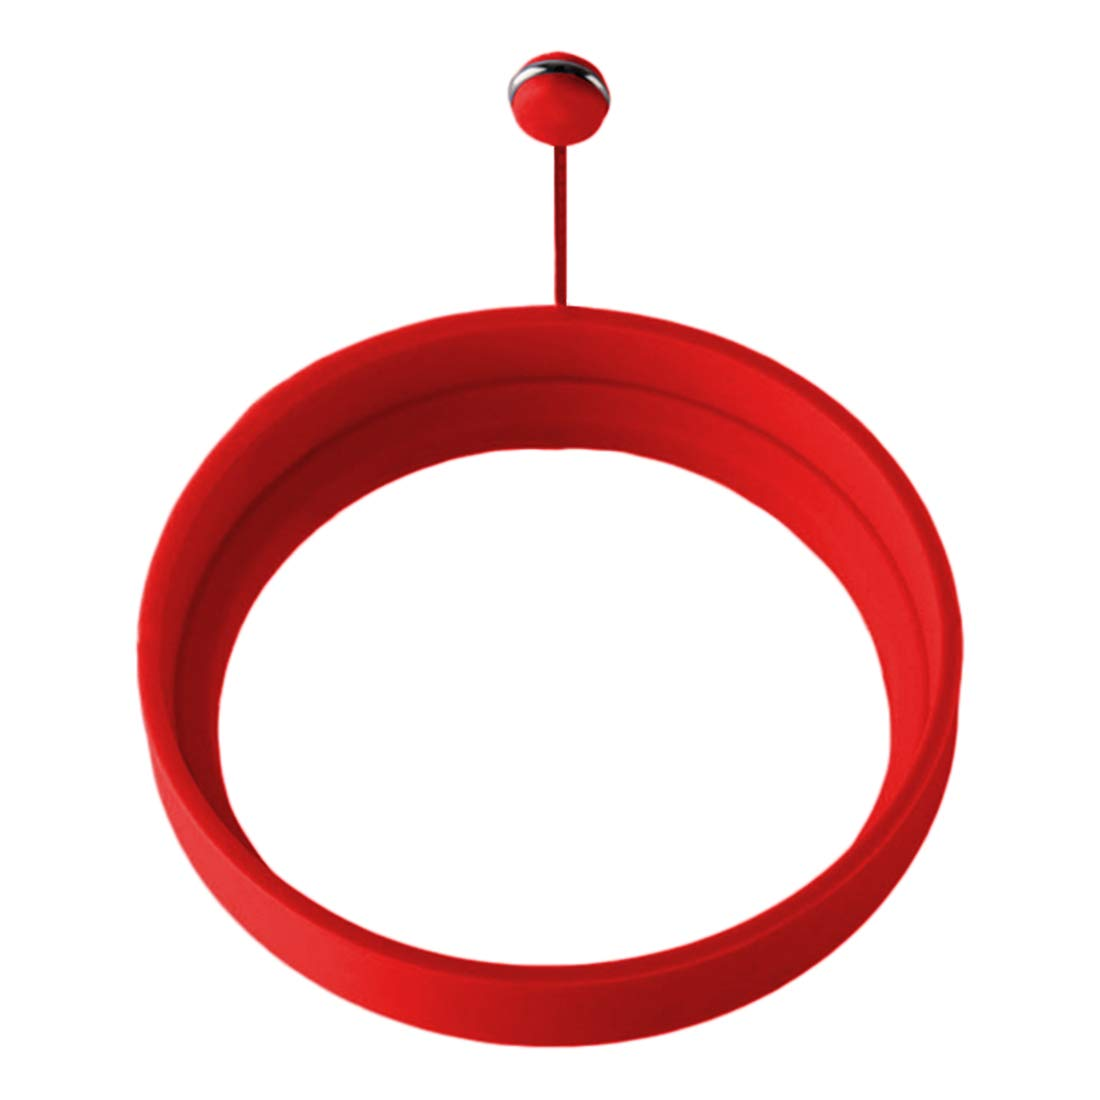 Silicone Egg Ring Breakfast Pancake Cooking Tools Frying Egg Moulds Fried Egg Molds Kitchen Gadgets-D